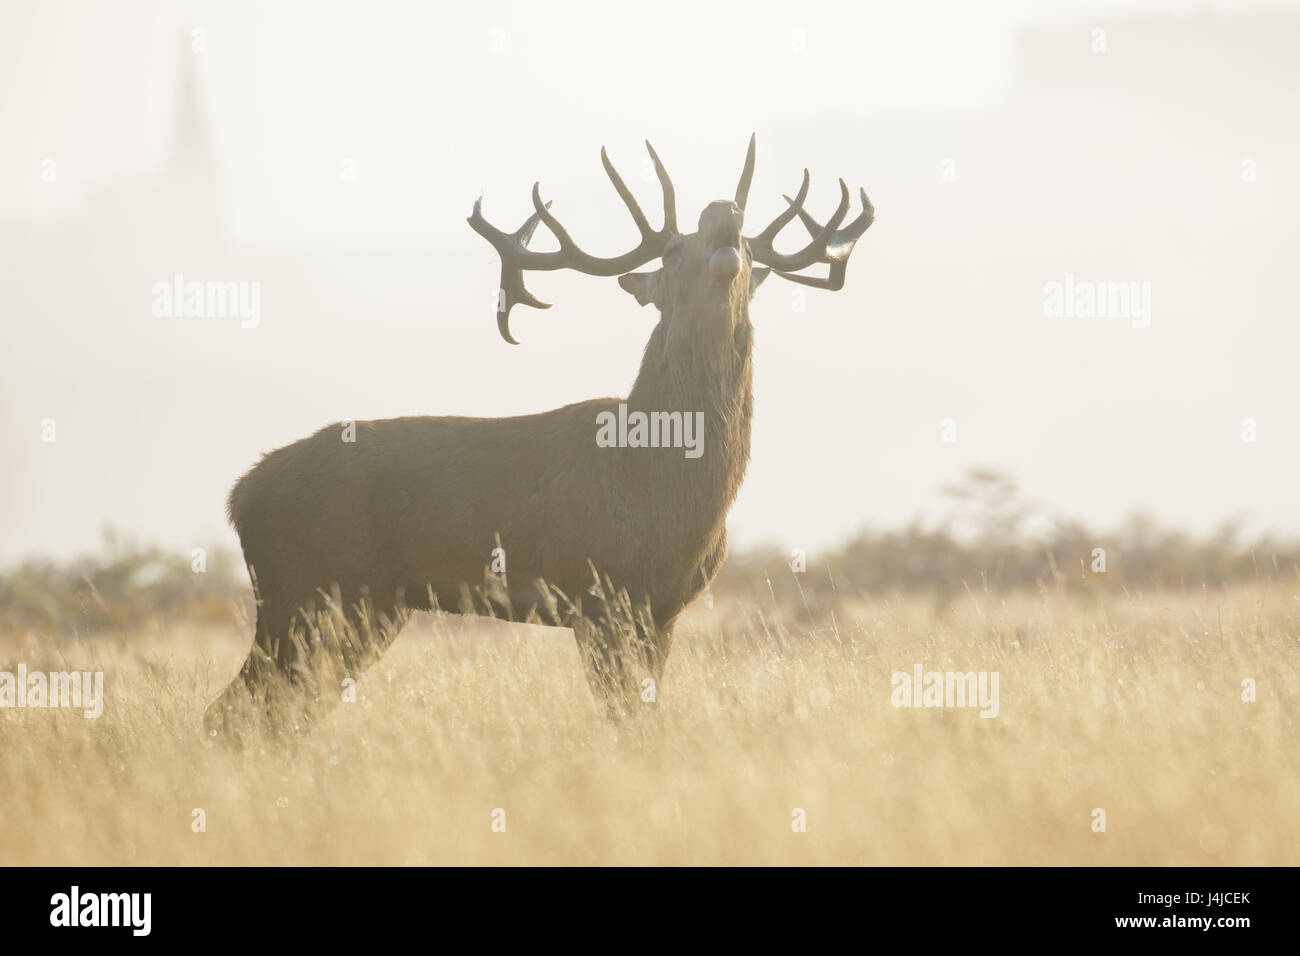 Red Deer rut stag (Cervus elaphus) bellowing or roaring on a misty morning among long grass - Stock Image